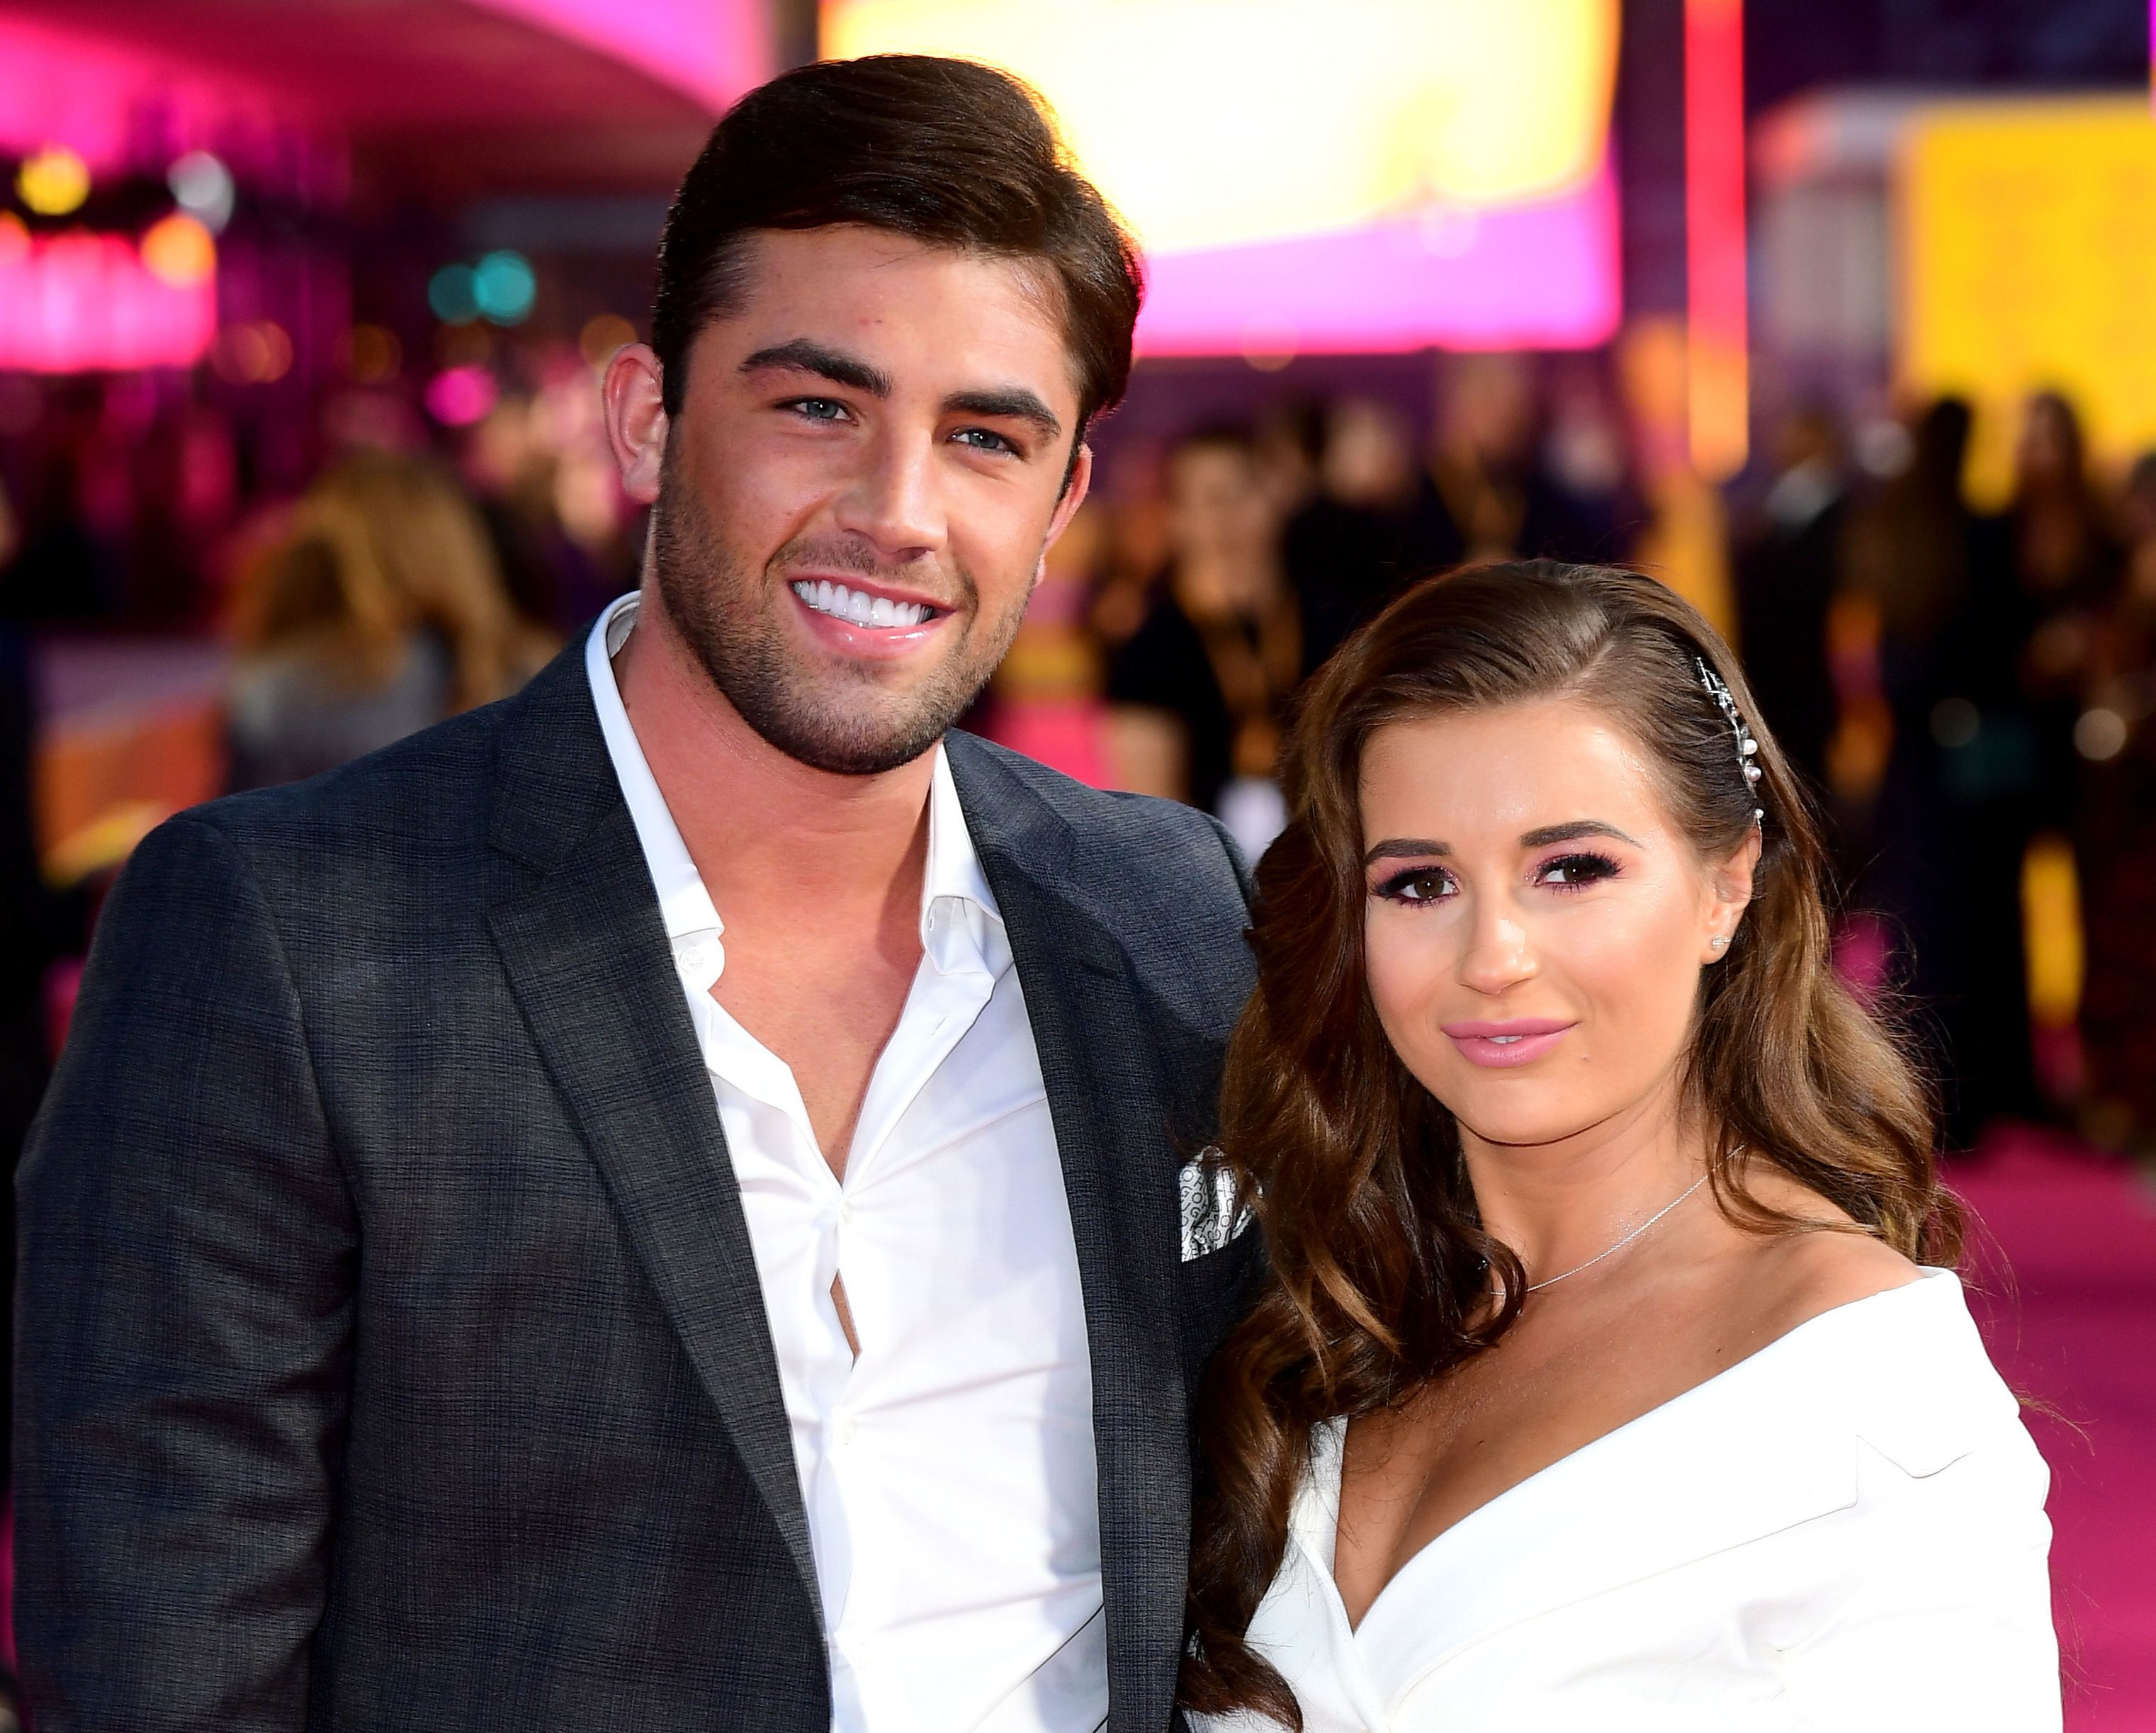 Dani Dyer And Jack Fincham Split Four Months After Winning Love